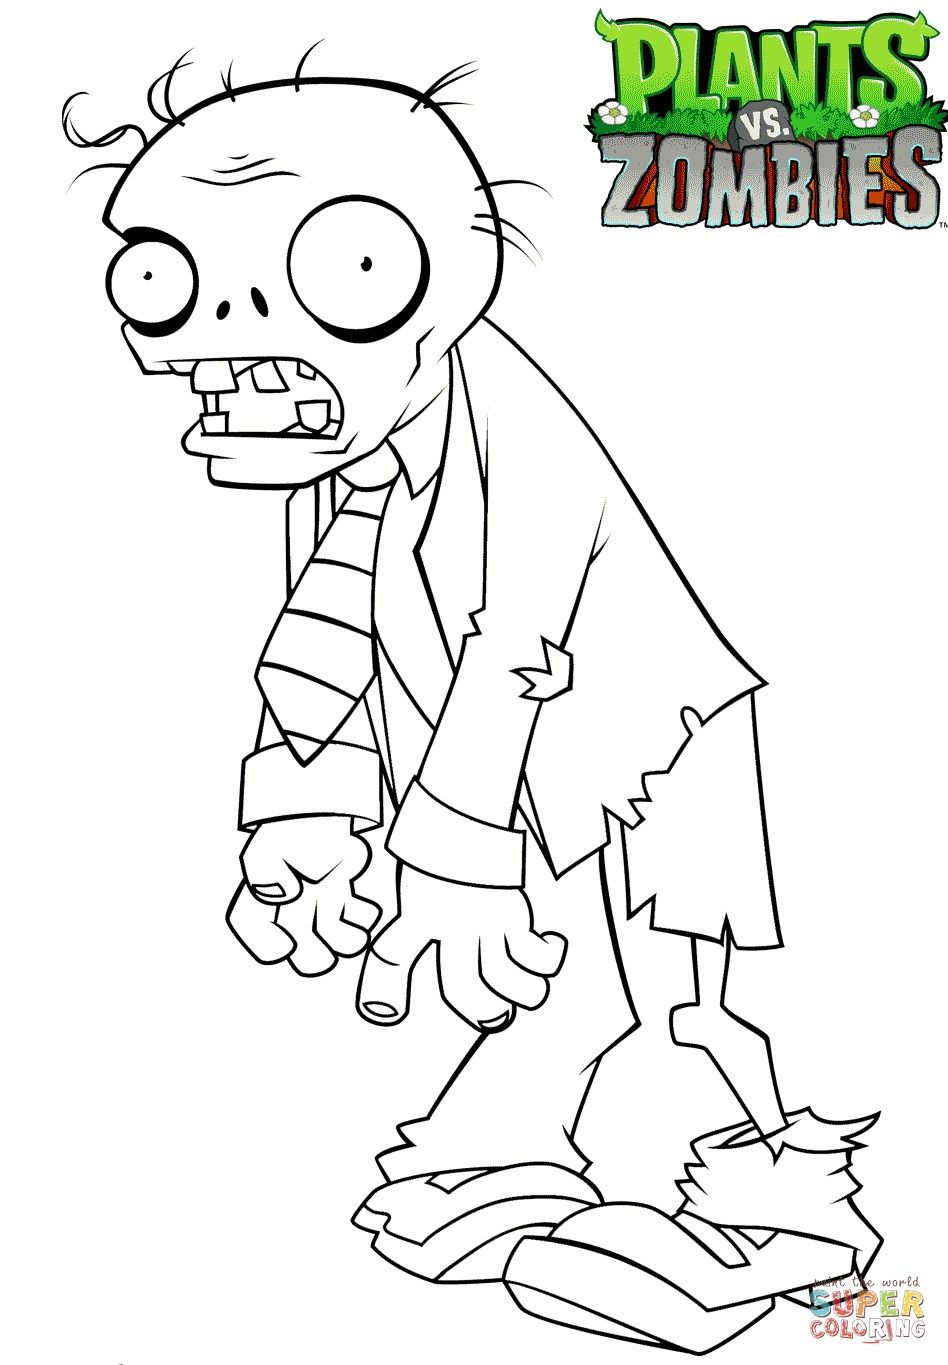 22 Best Photo Of Zombie Coloring Pages Plant Zombie Plants Vs